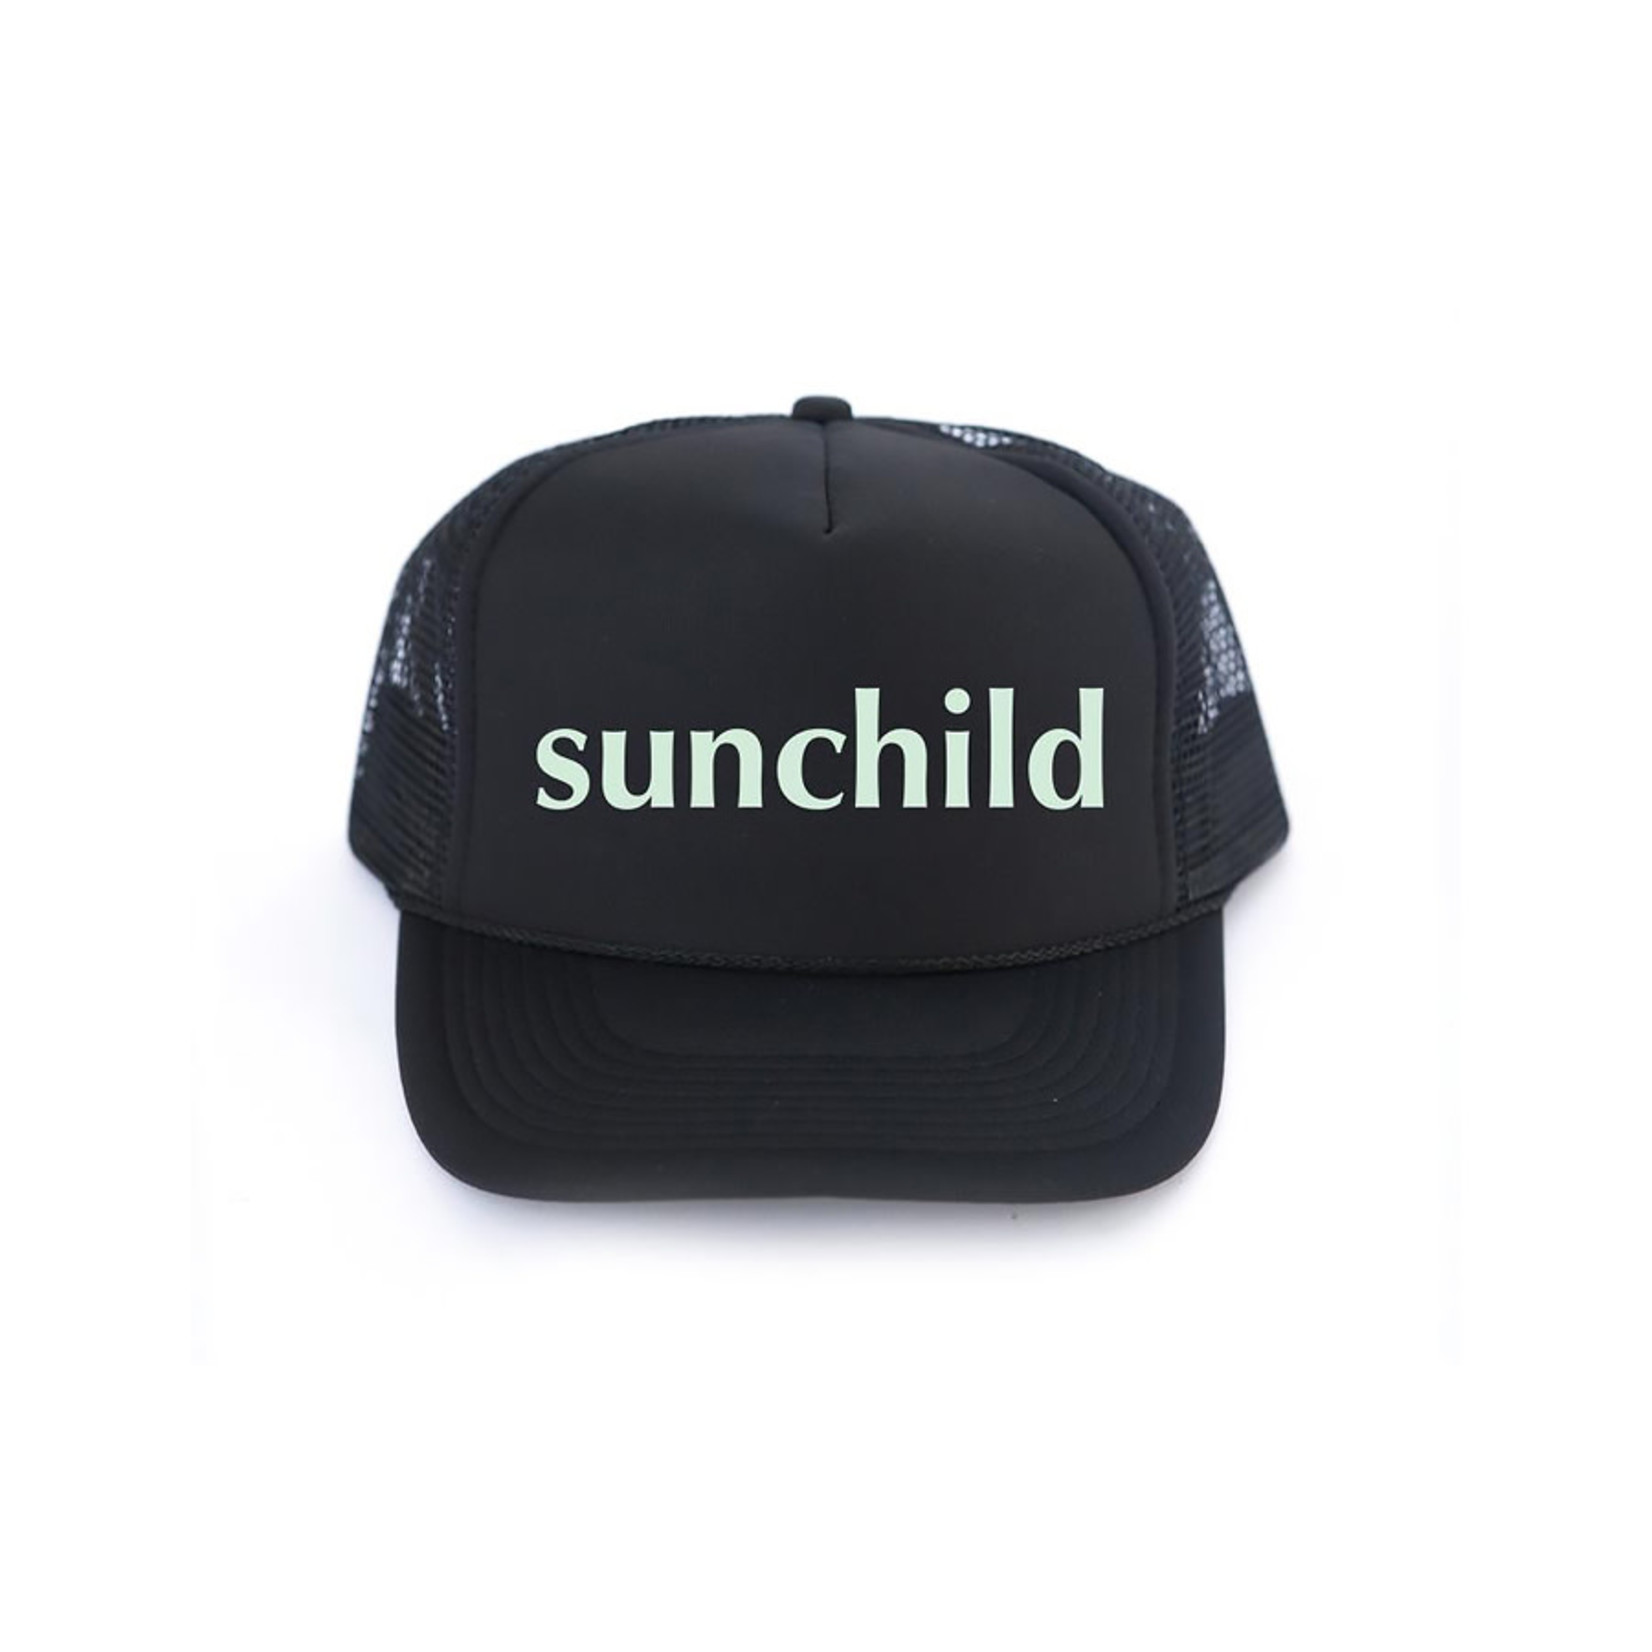 Mothersun and the Captain Youth  Sunchild Trucker Hat